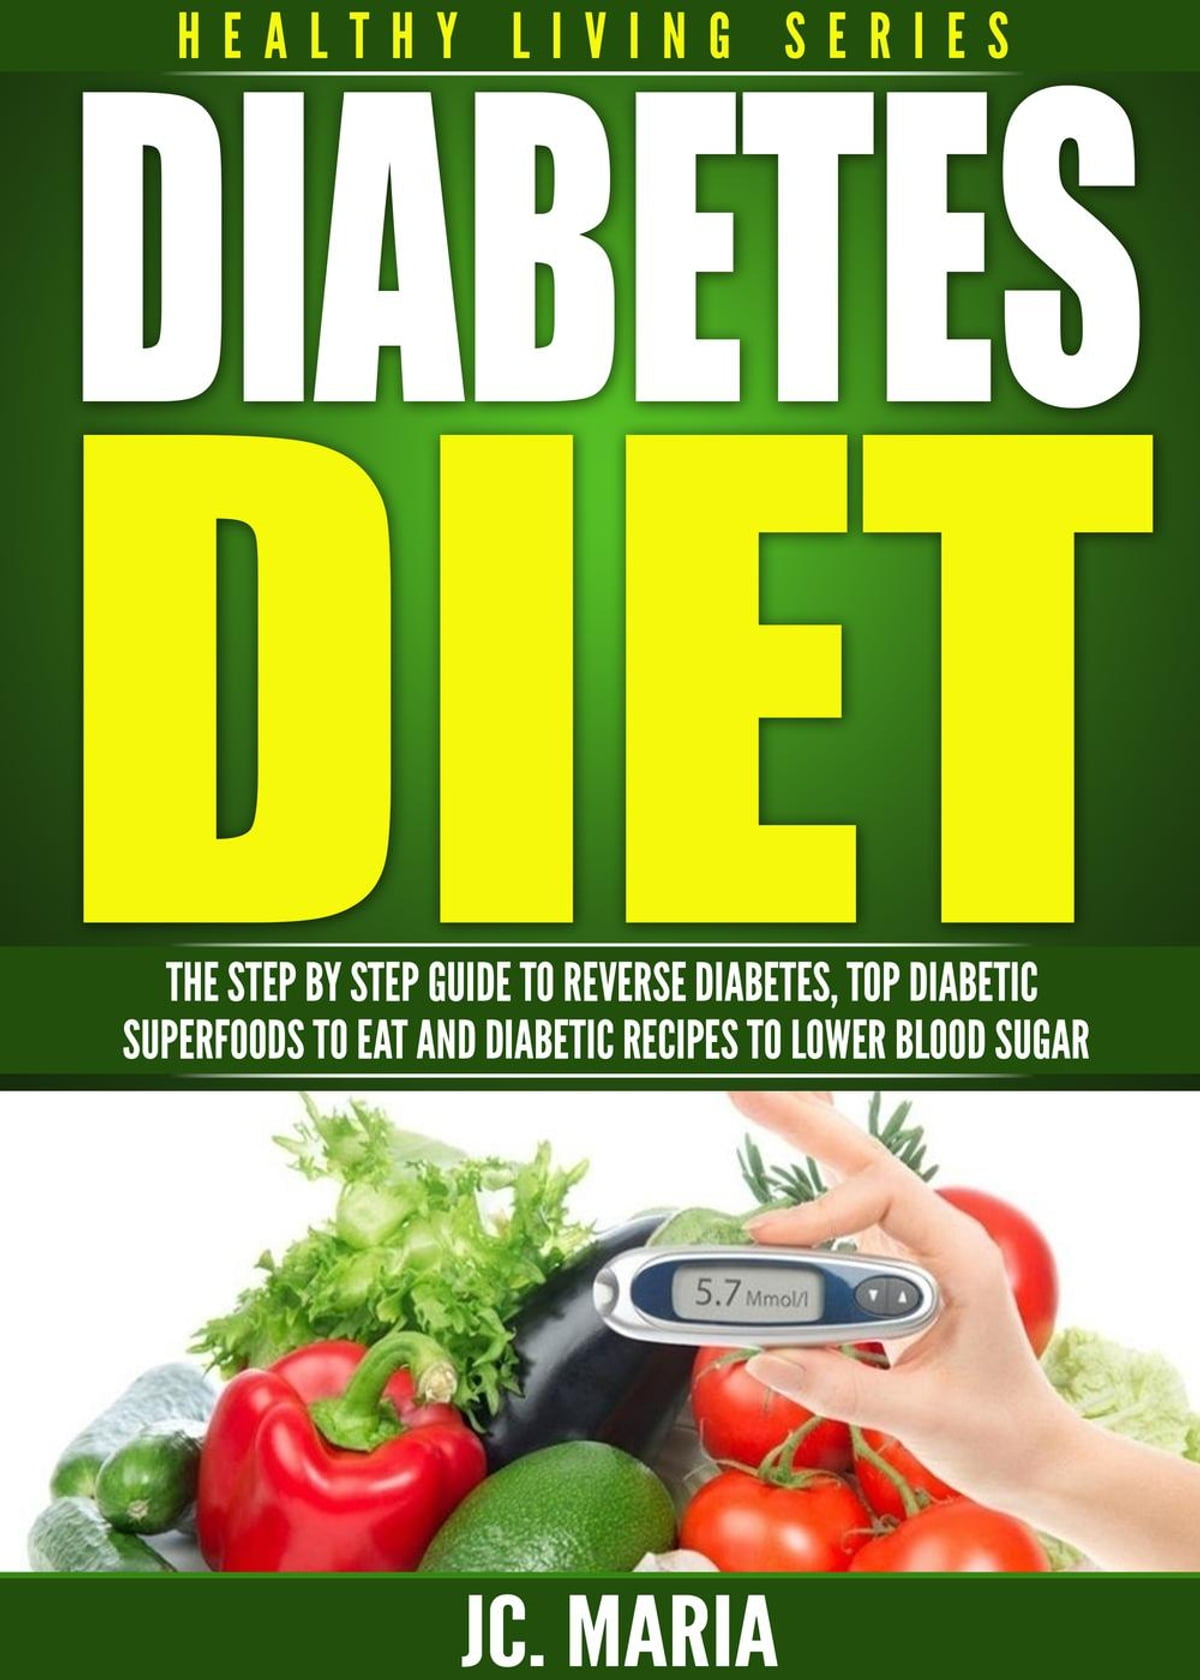 Diabetes Nutrition Diabetes Diet The Step By Step Guide To Reverse Diabetes Top Diabetic Superfoods To Eat And Diabetic Recipes To Lower Blood Sugar Ebook By Jc Maria